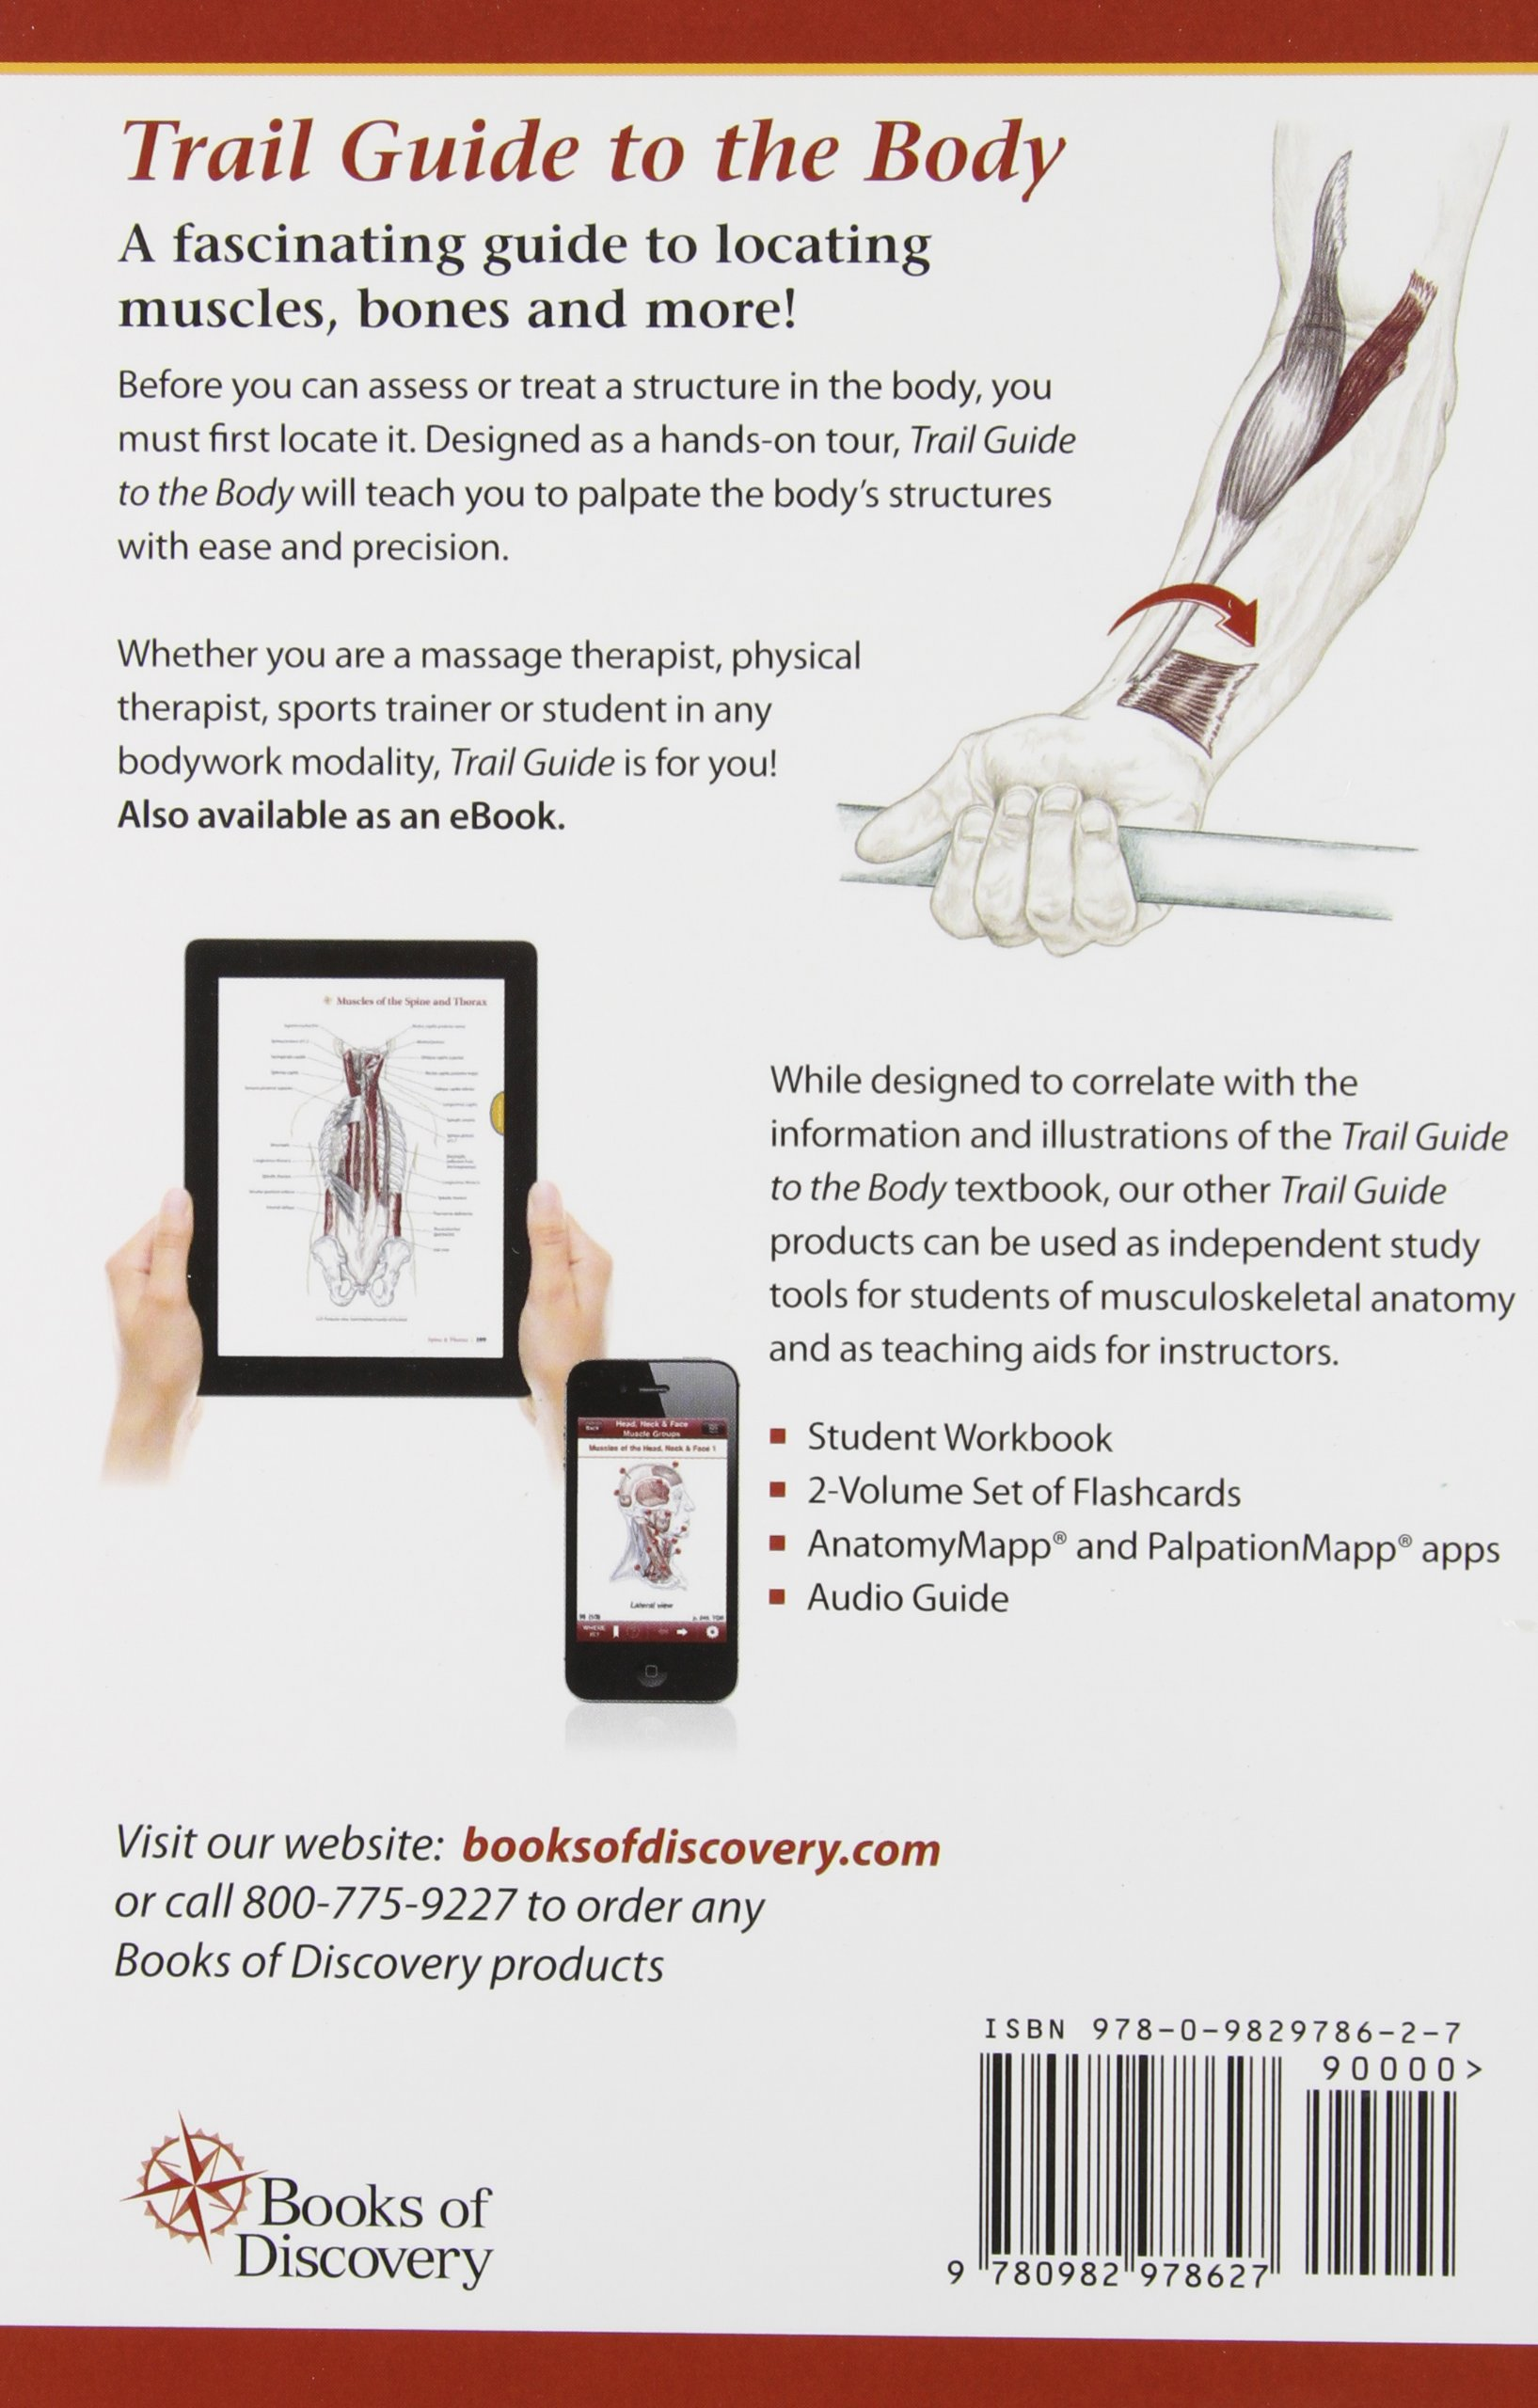 Trail guide to the bodys quick reference to trigger points andrew trail guide to the bodys quick reference to trigger points andrew biel robin dorn 9780982978627 books amazon fandeluxe Image collections